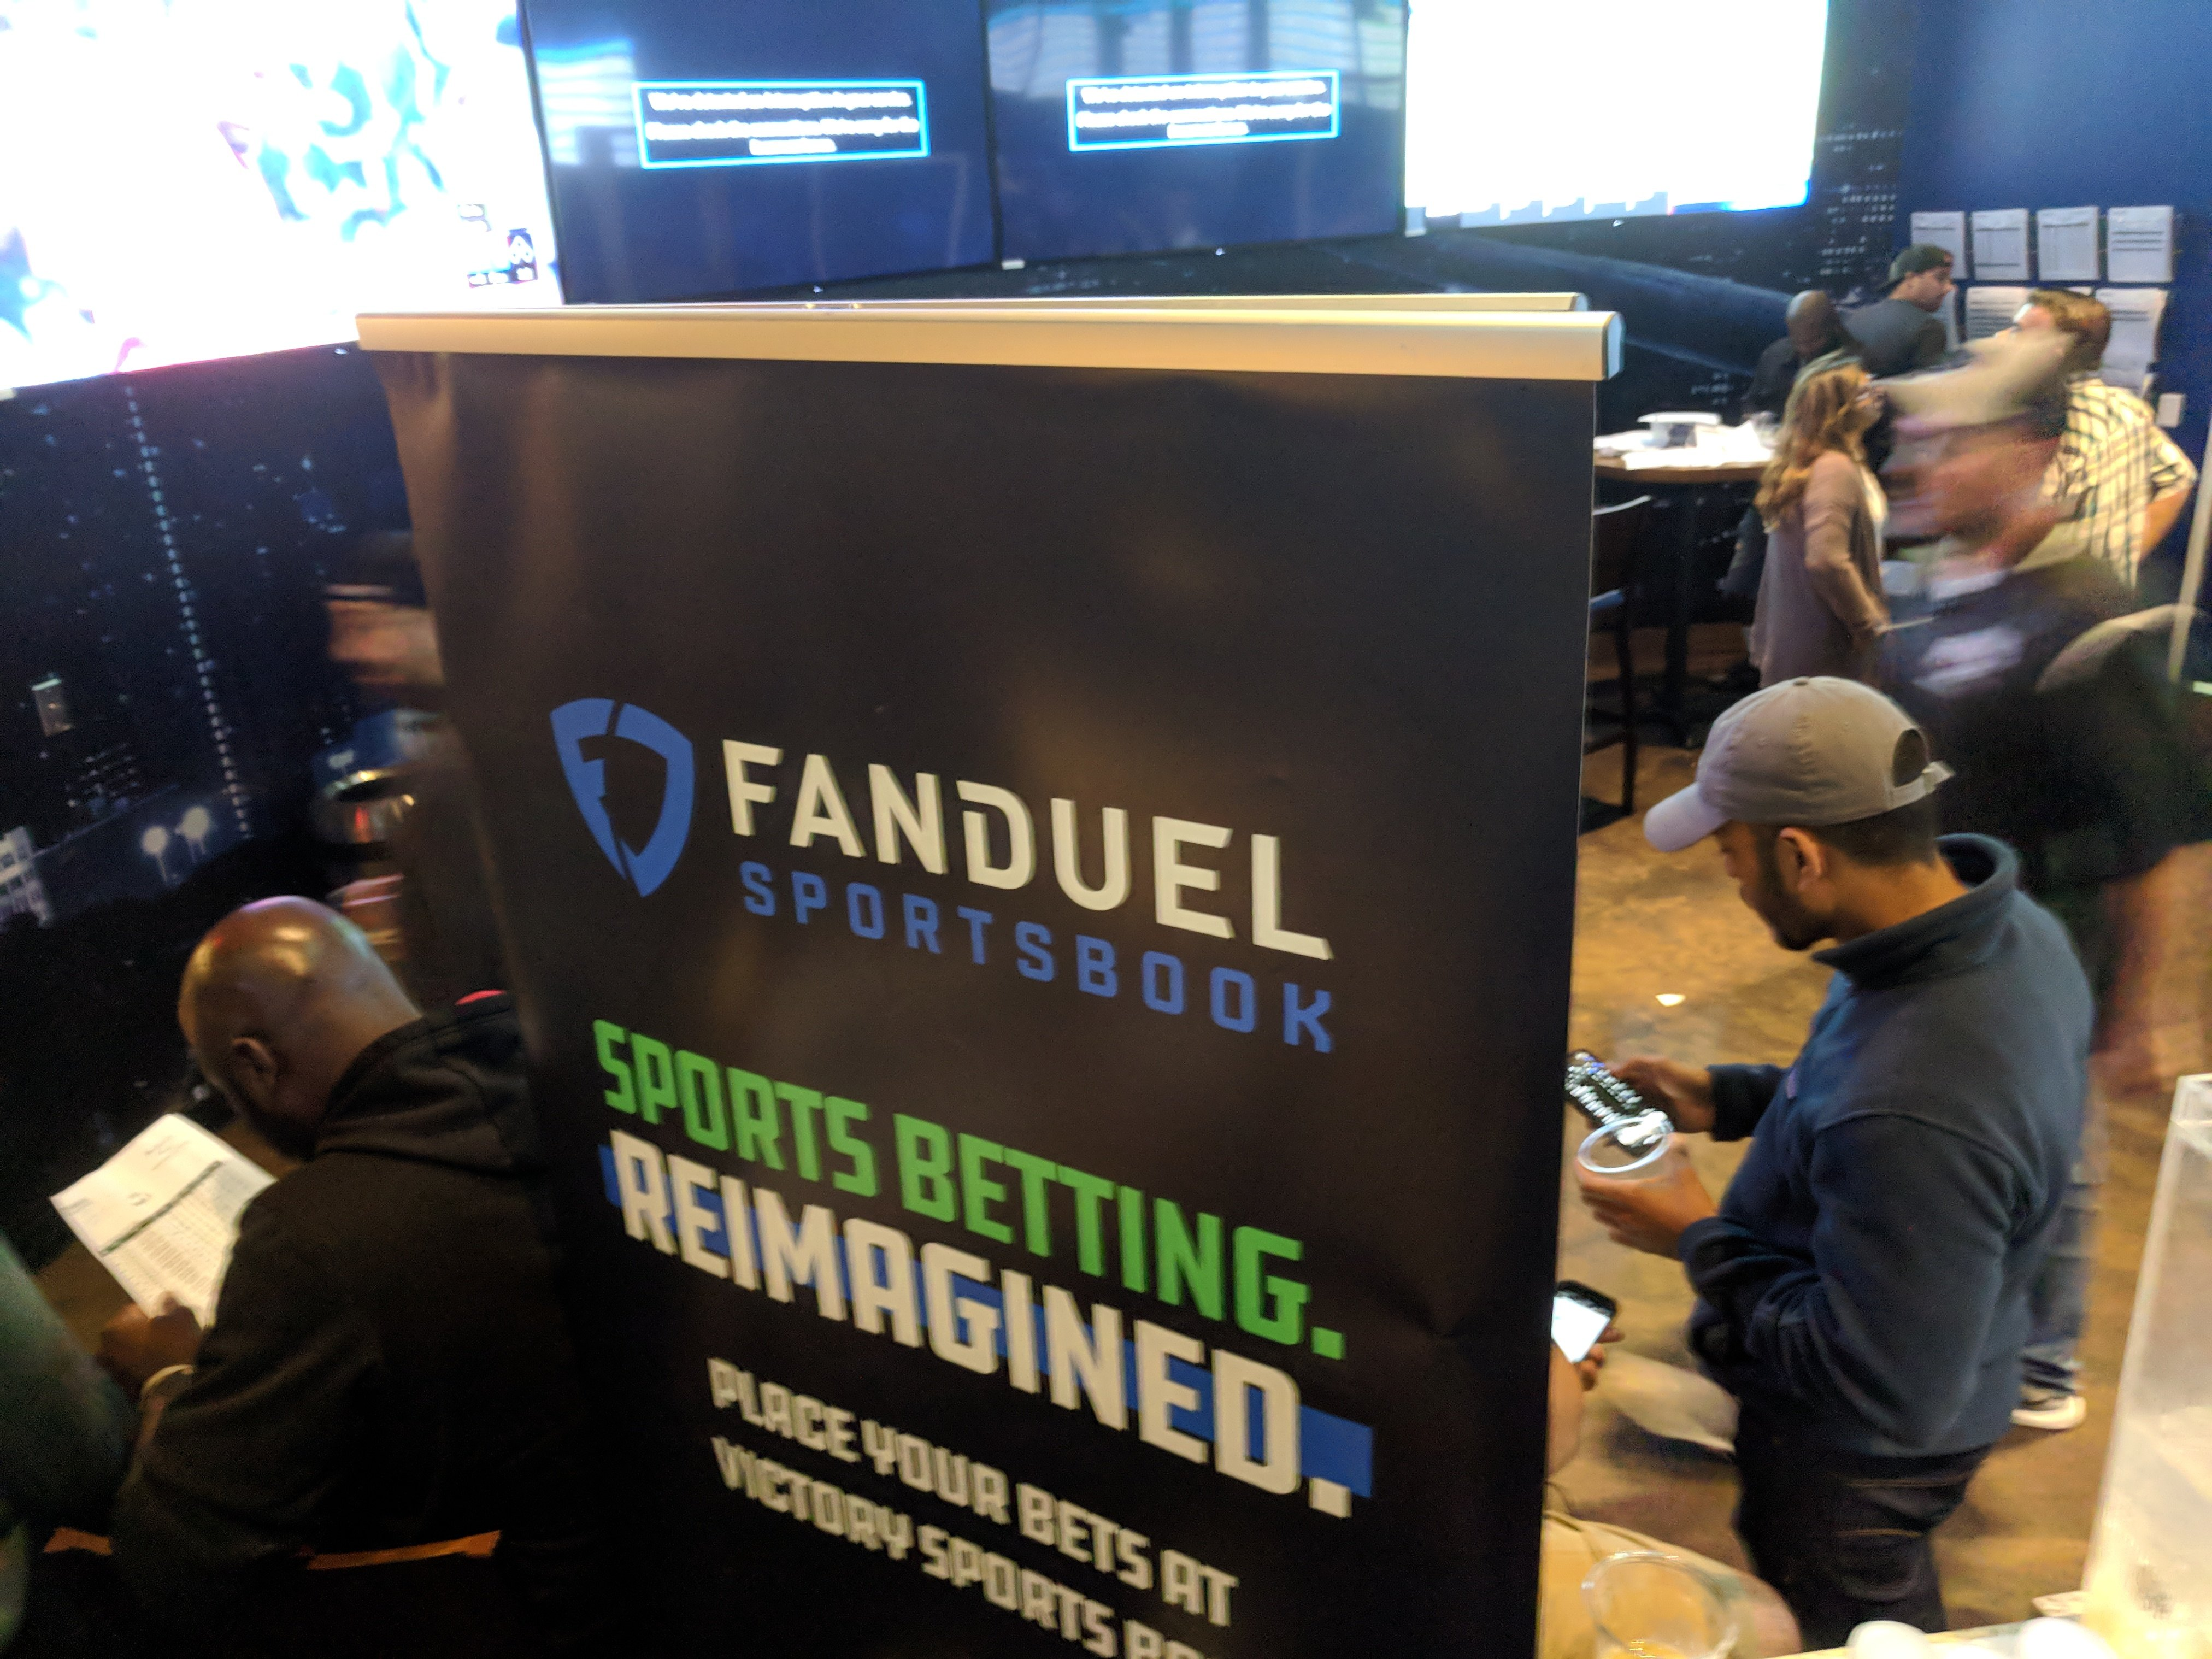 William Hill Settles Lawsuit with FanDuel Over Plagiarism of Sports Betting Guides